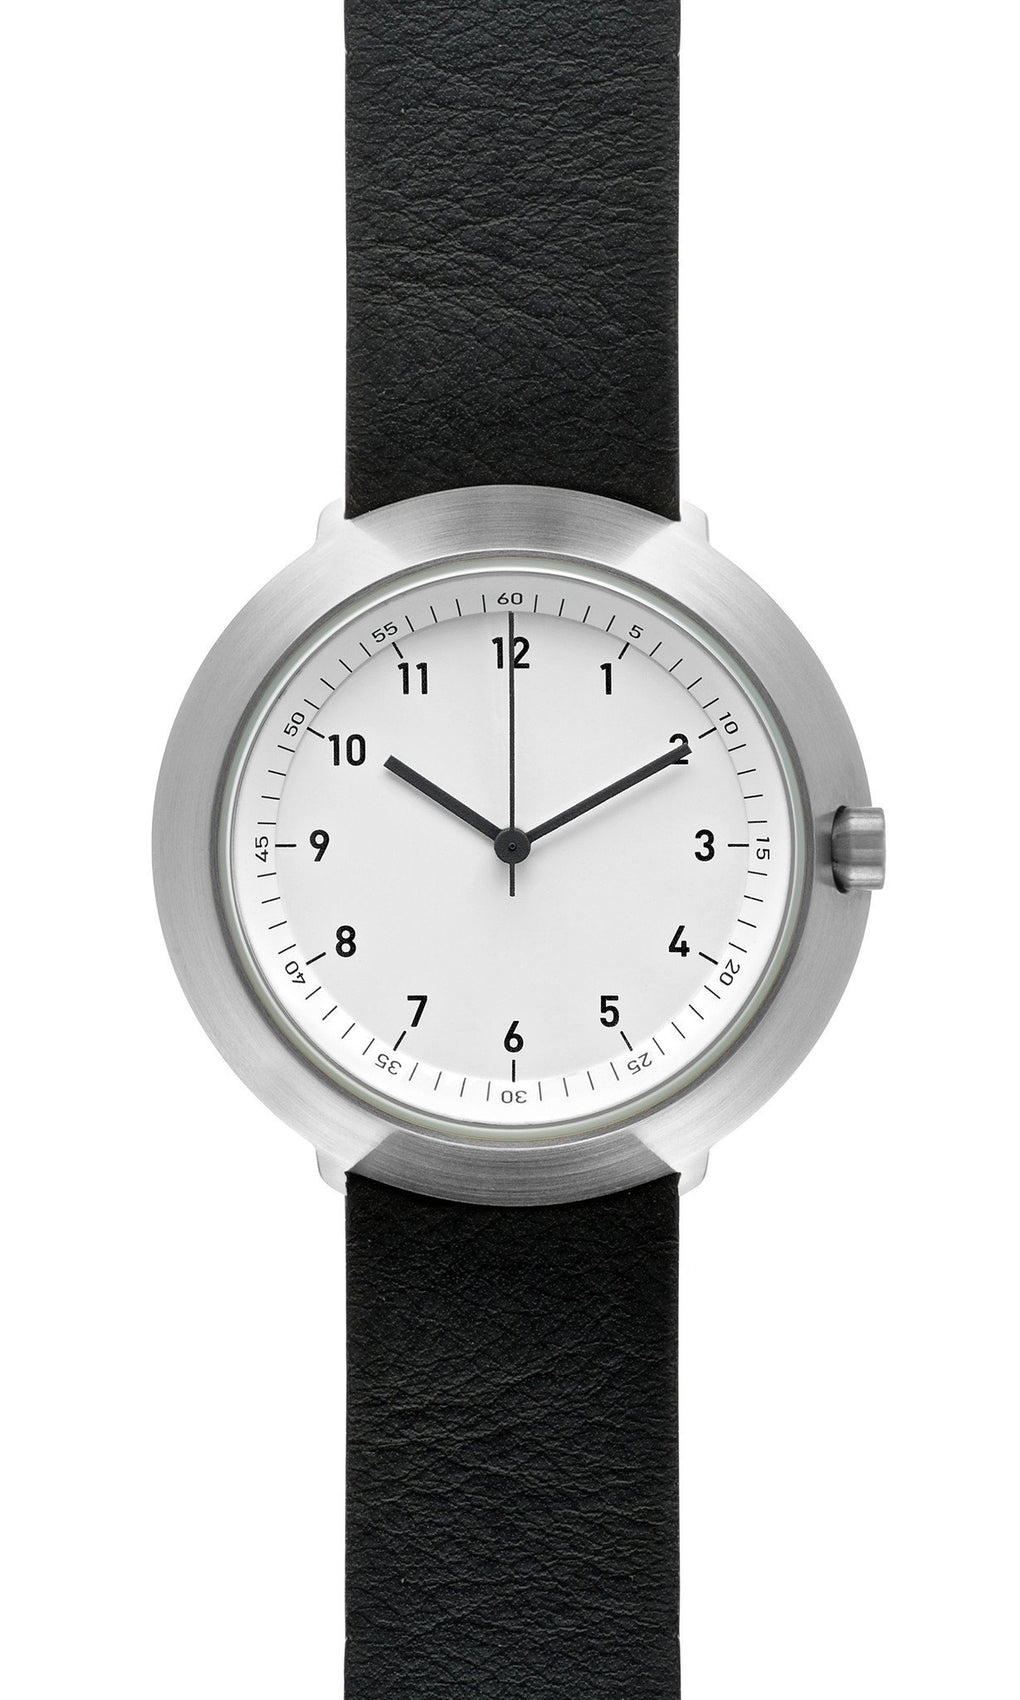 Fuji F43-01 Watch (White Dial with Leather Belt) Watches Normal